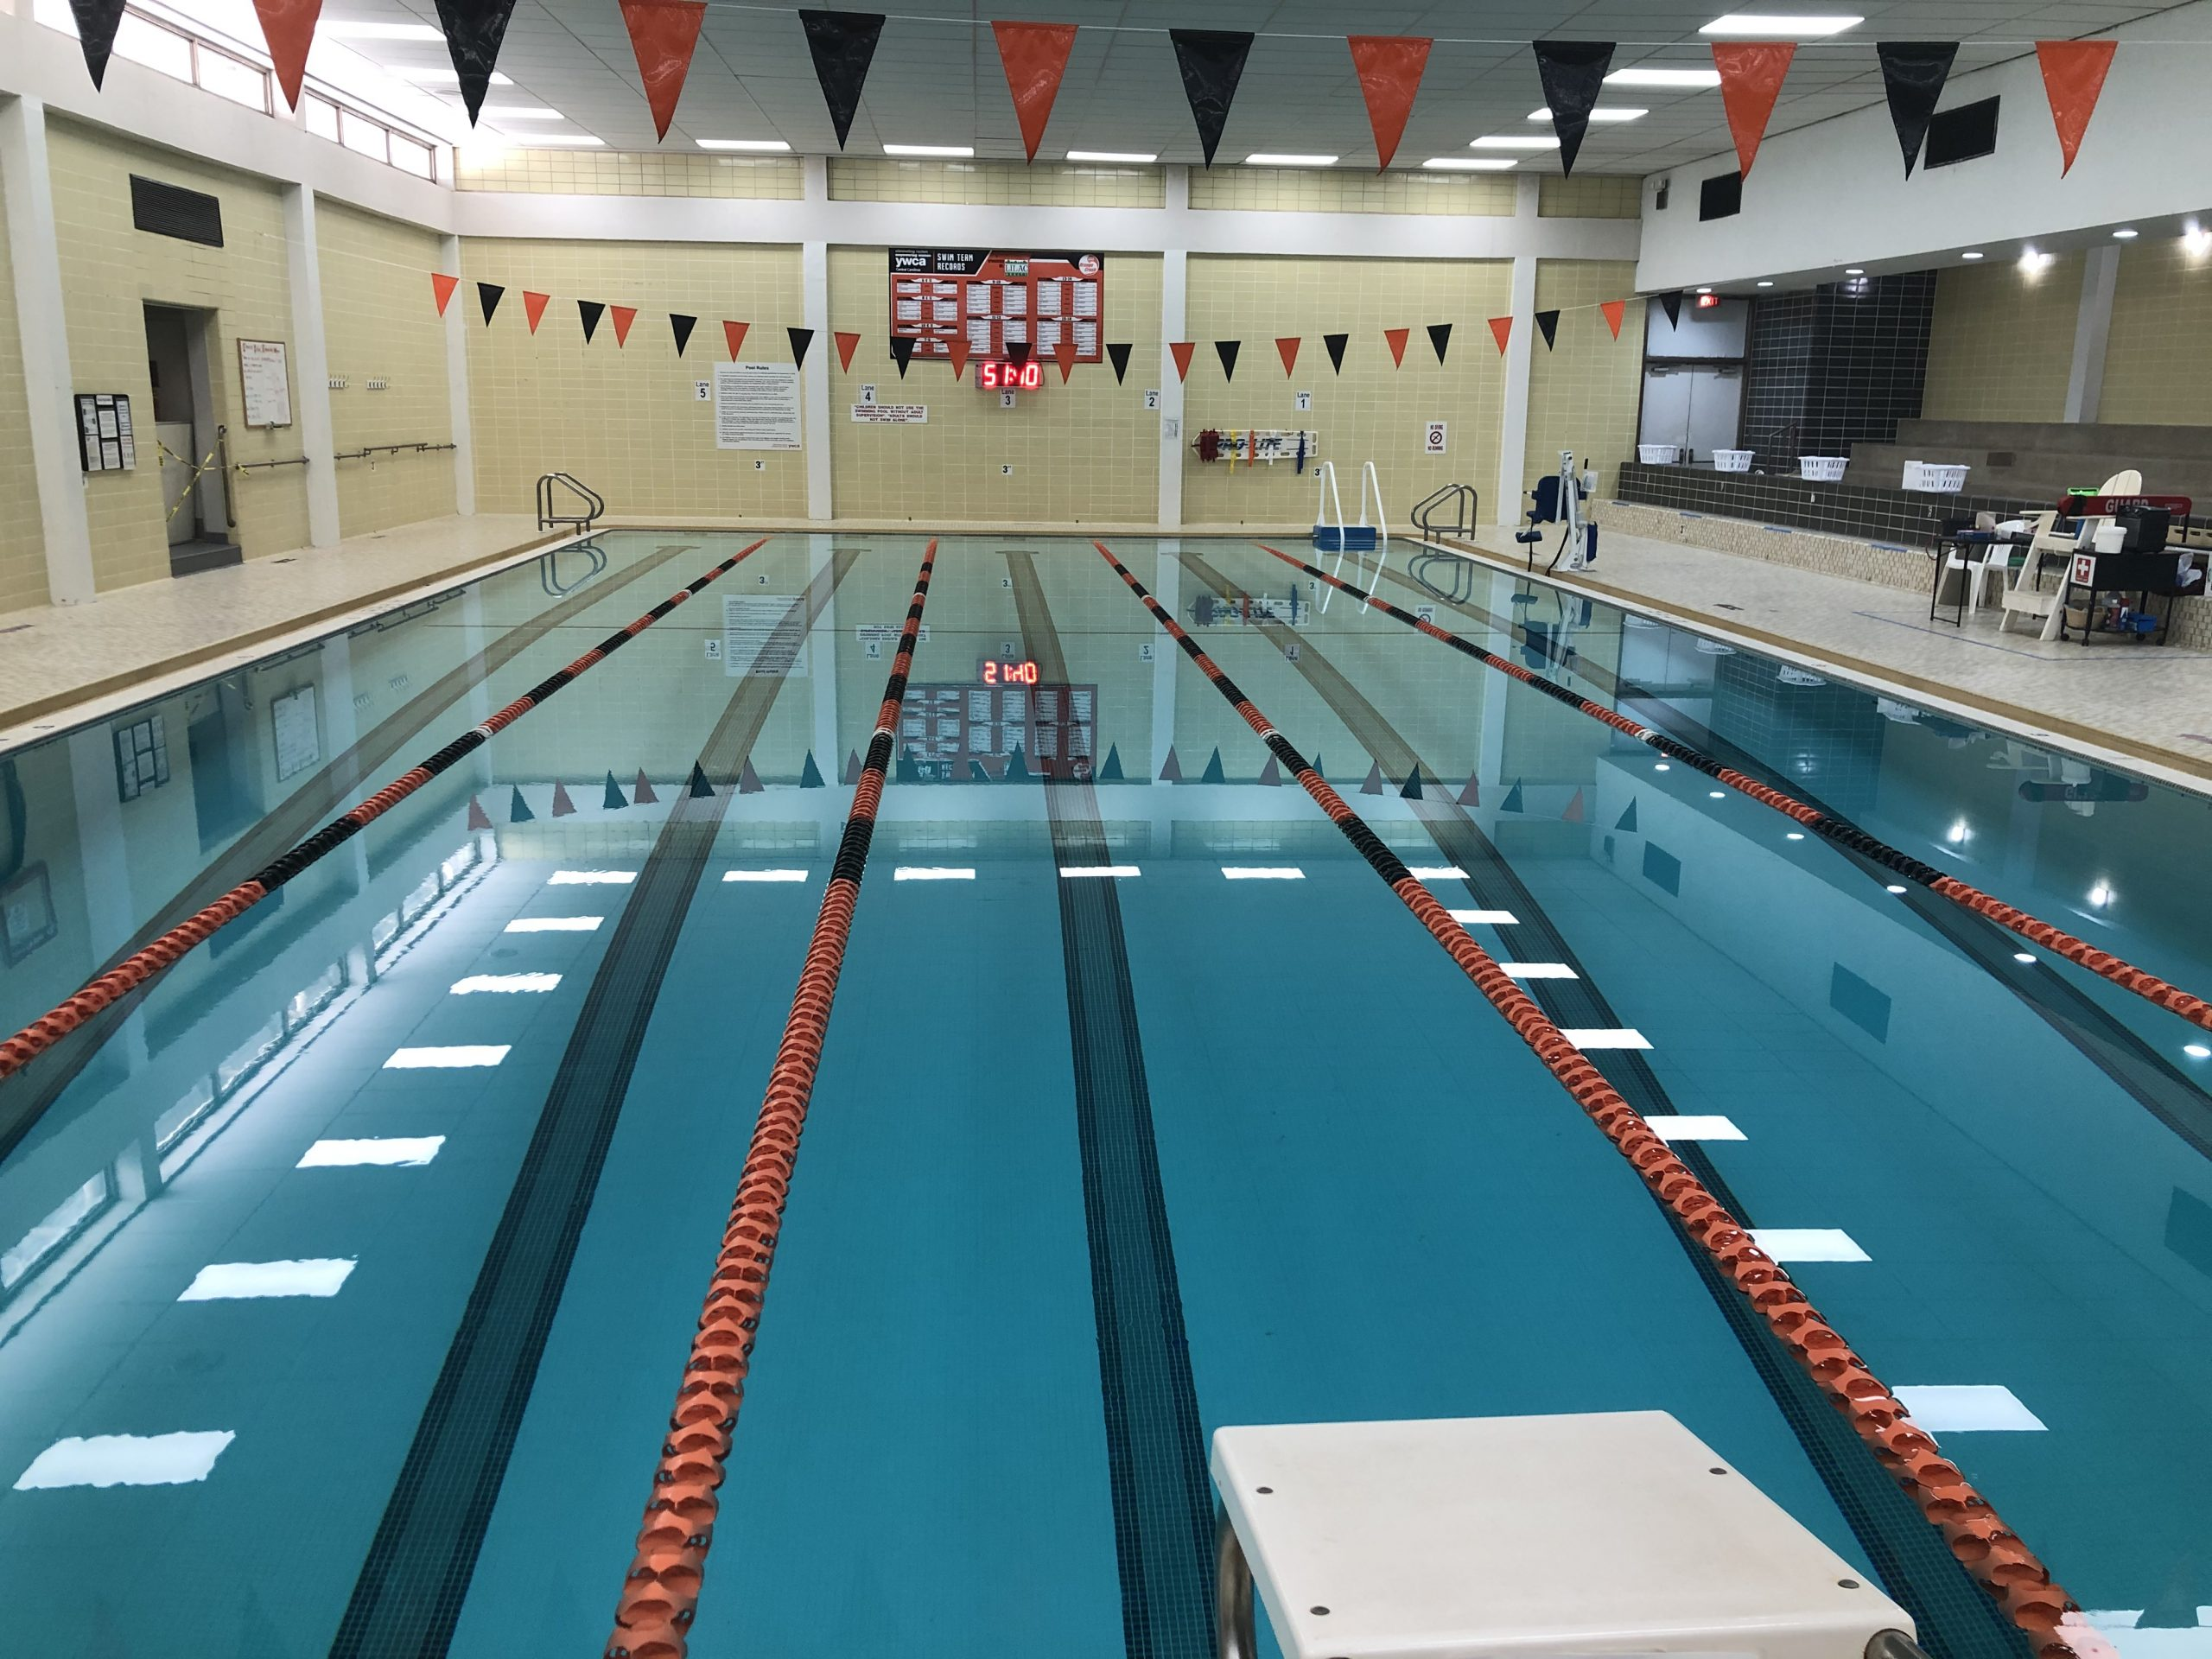 COVID19, social distancing, fitness center, YWCA, gym, co-ed gym, workout, indoor pool, swim